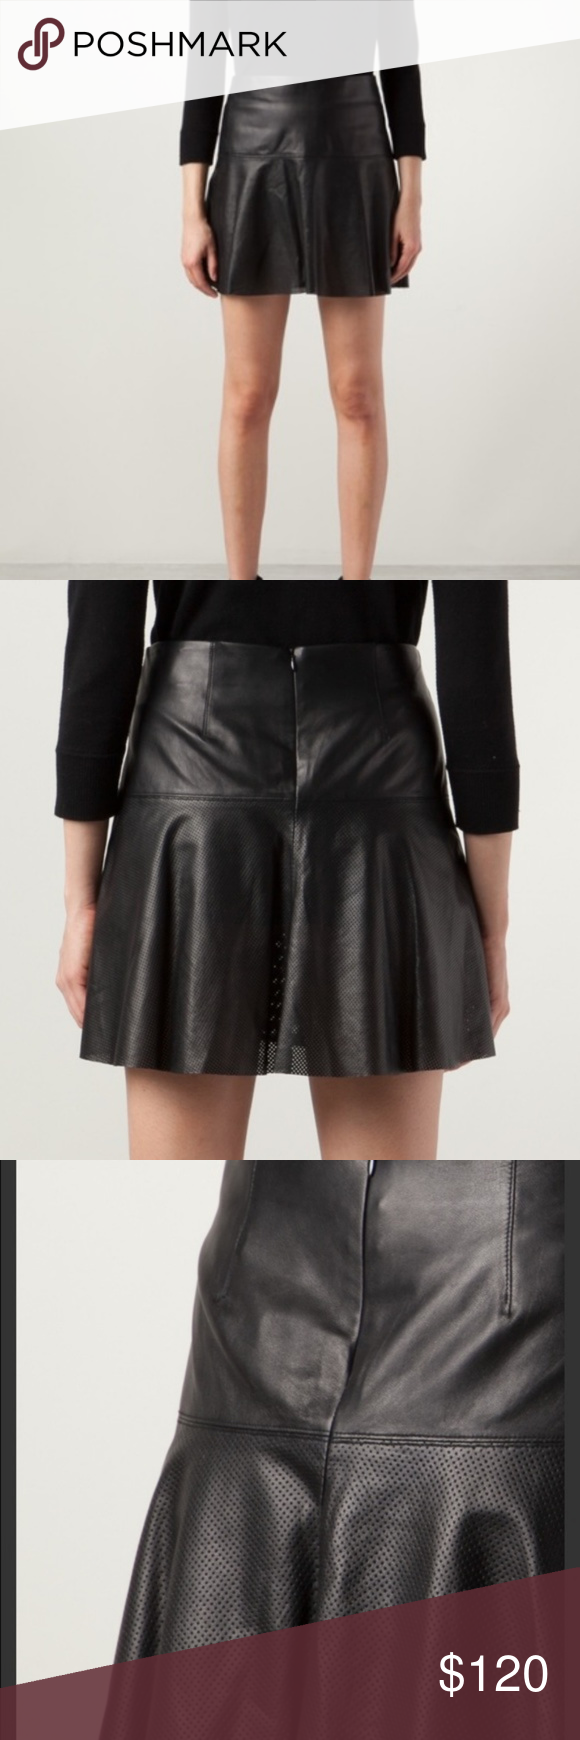 5e2a36f641 Vince Perforated Lamb Leather Skirt This is a Vince designer lamb leather  skirt with perforated detail